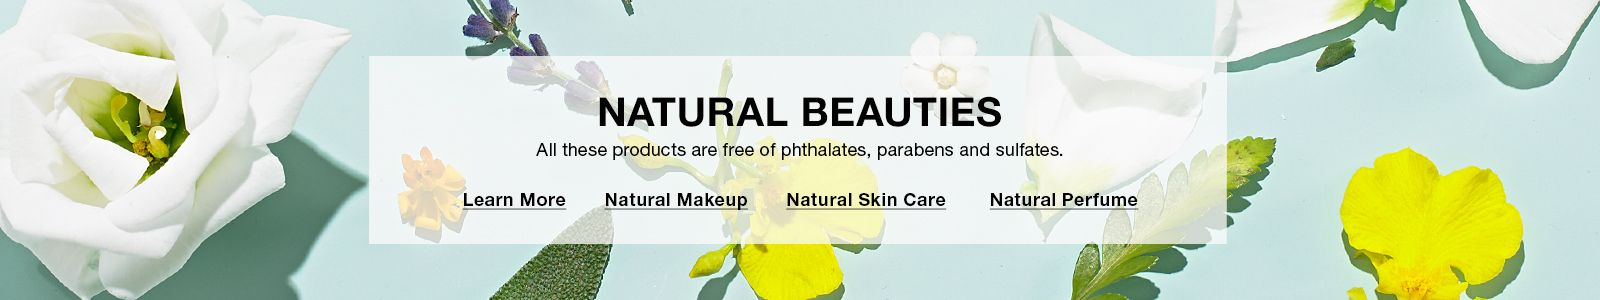 Natural Beauties, All these products are free of phthalates, parabens and sulfates, Learn More, Natural Makeup, Natural Skin Care, Natural Perfume